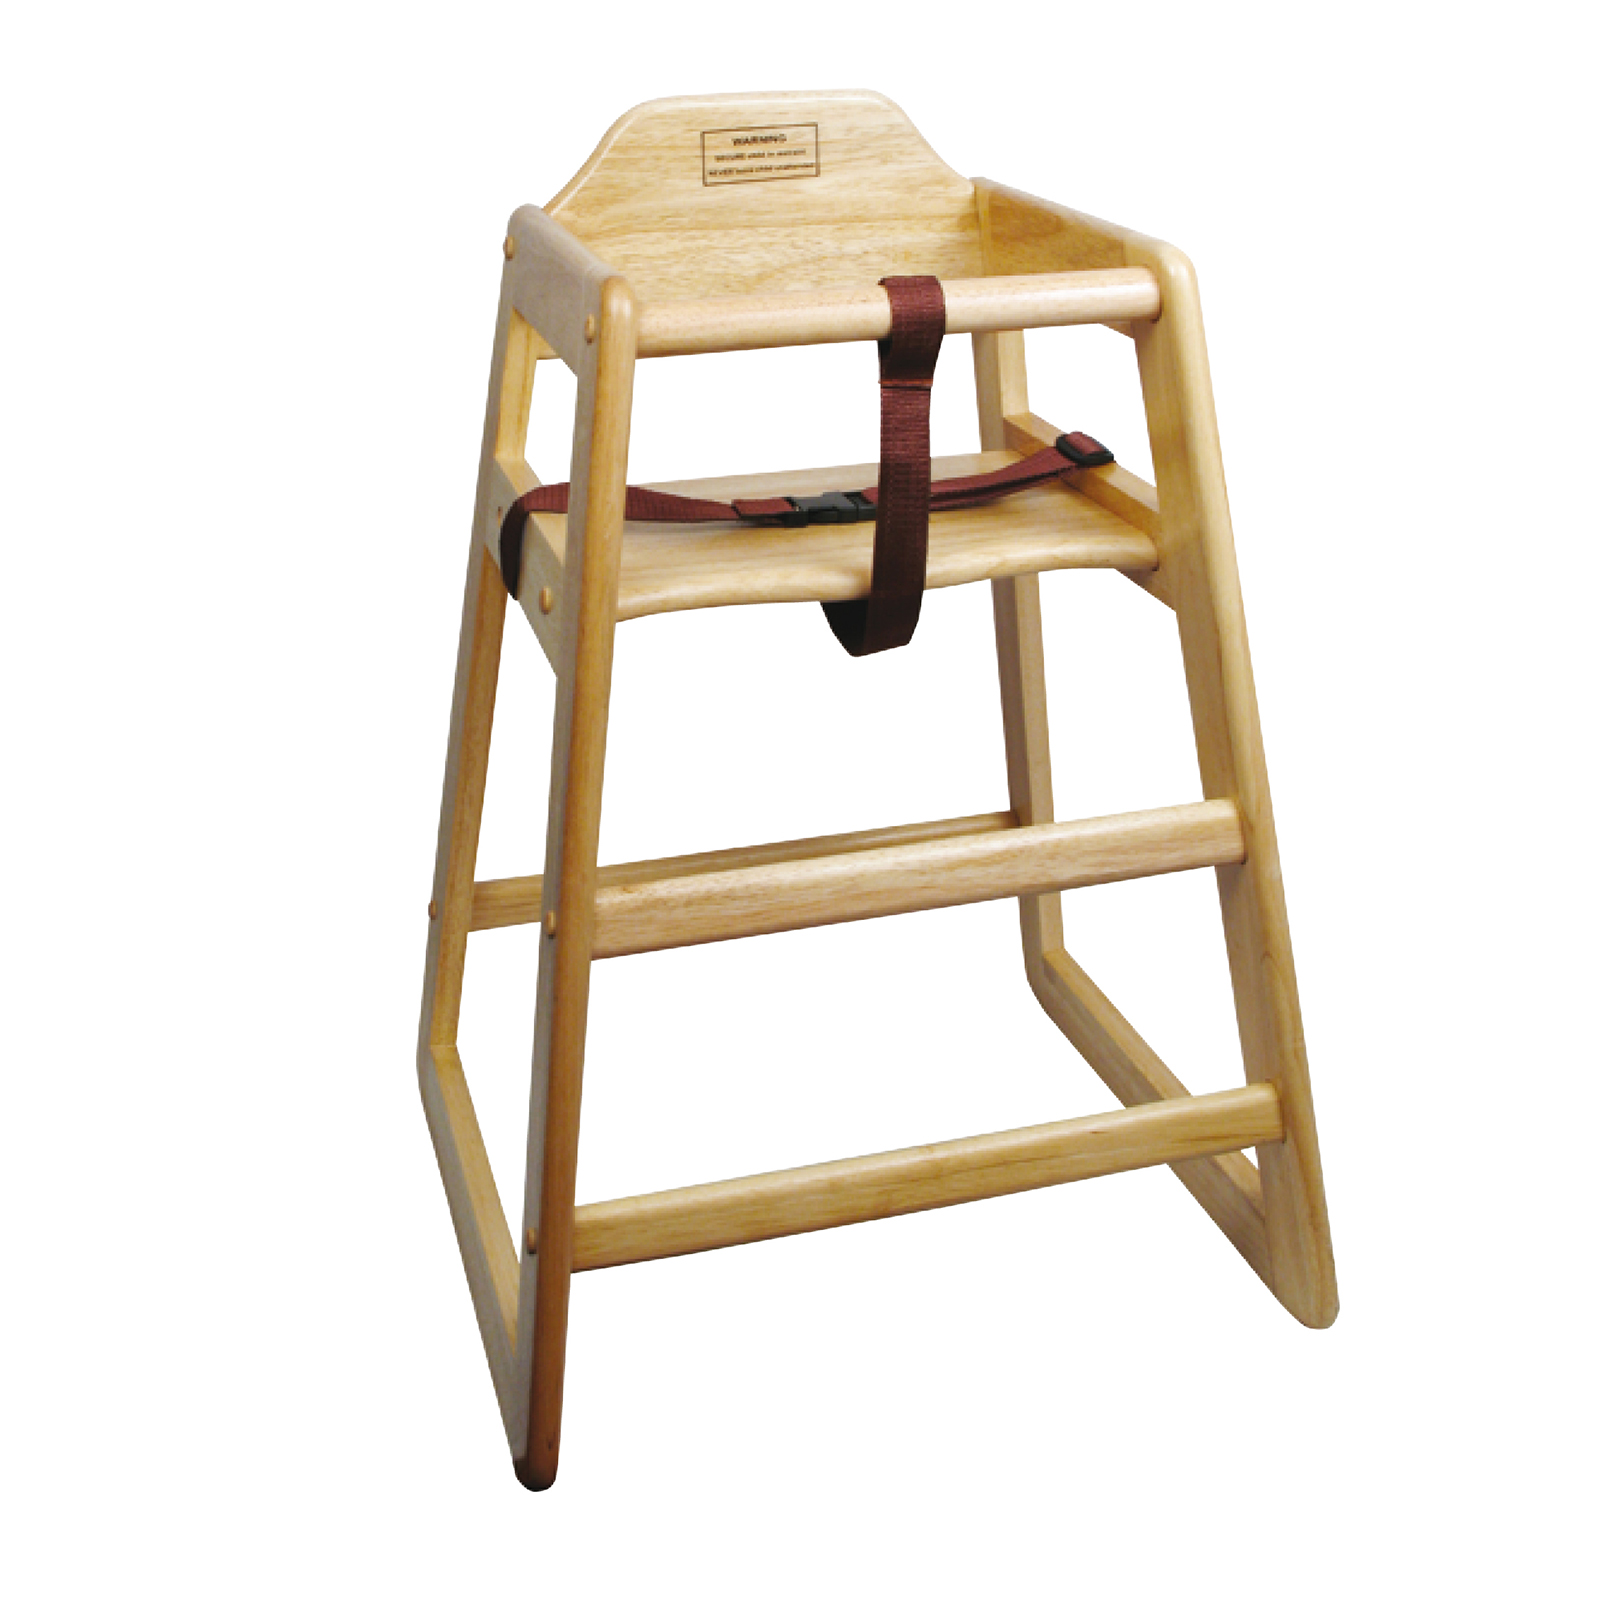 4850-75 Winco CHH-101A high chair, wood